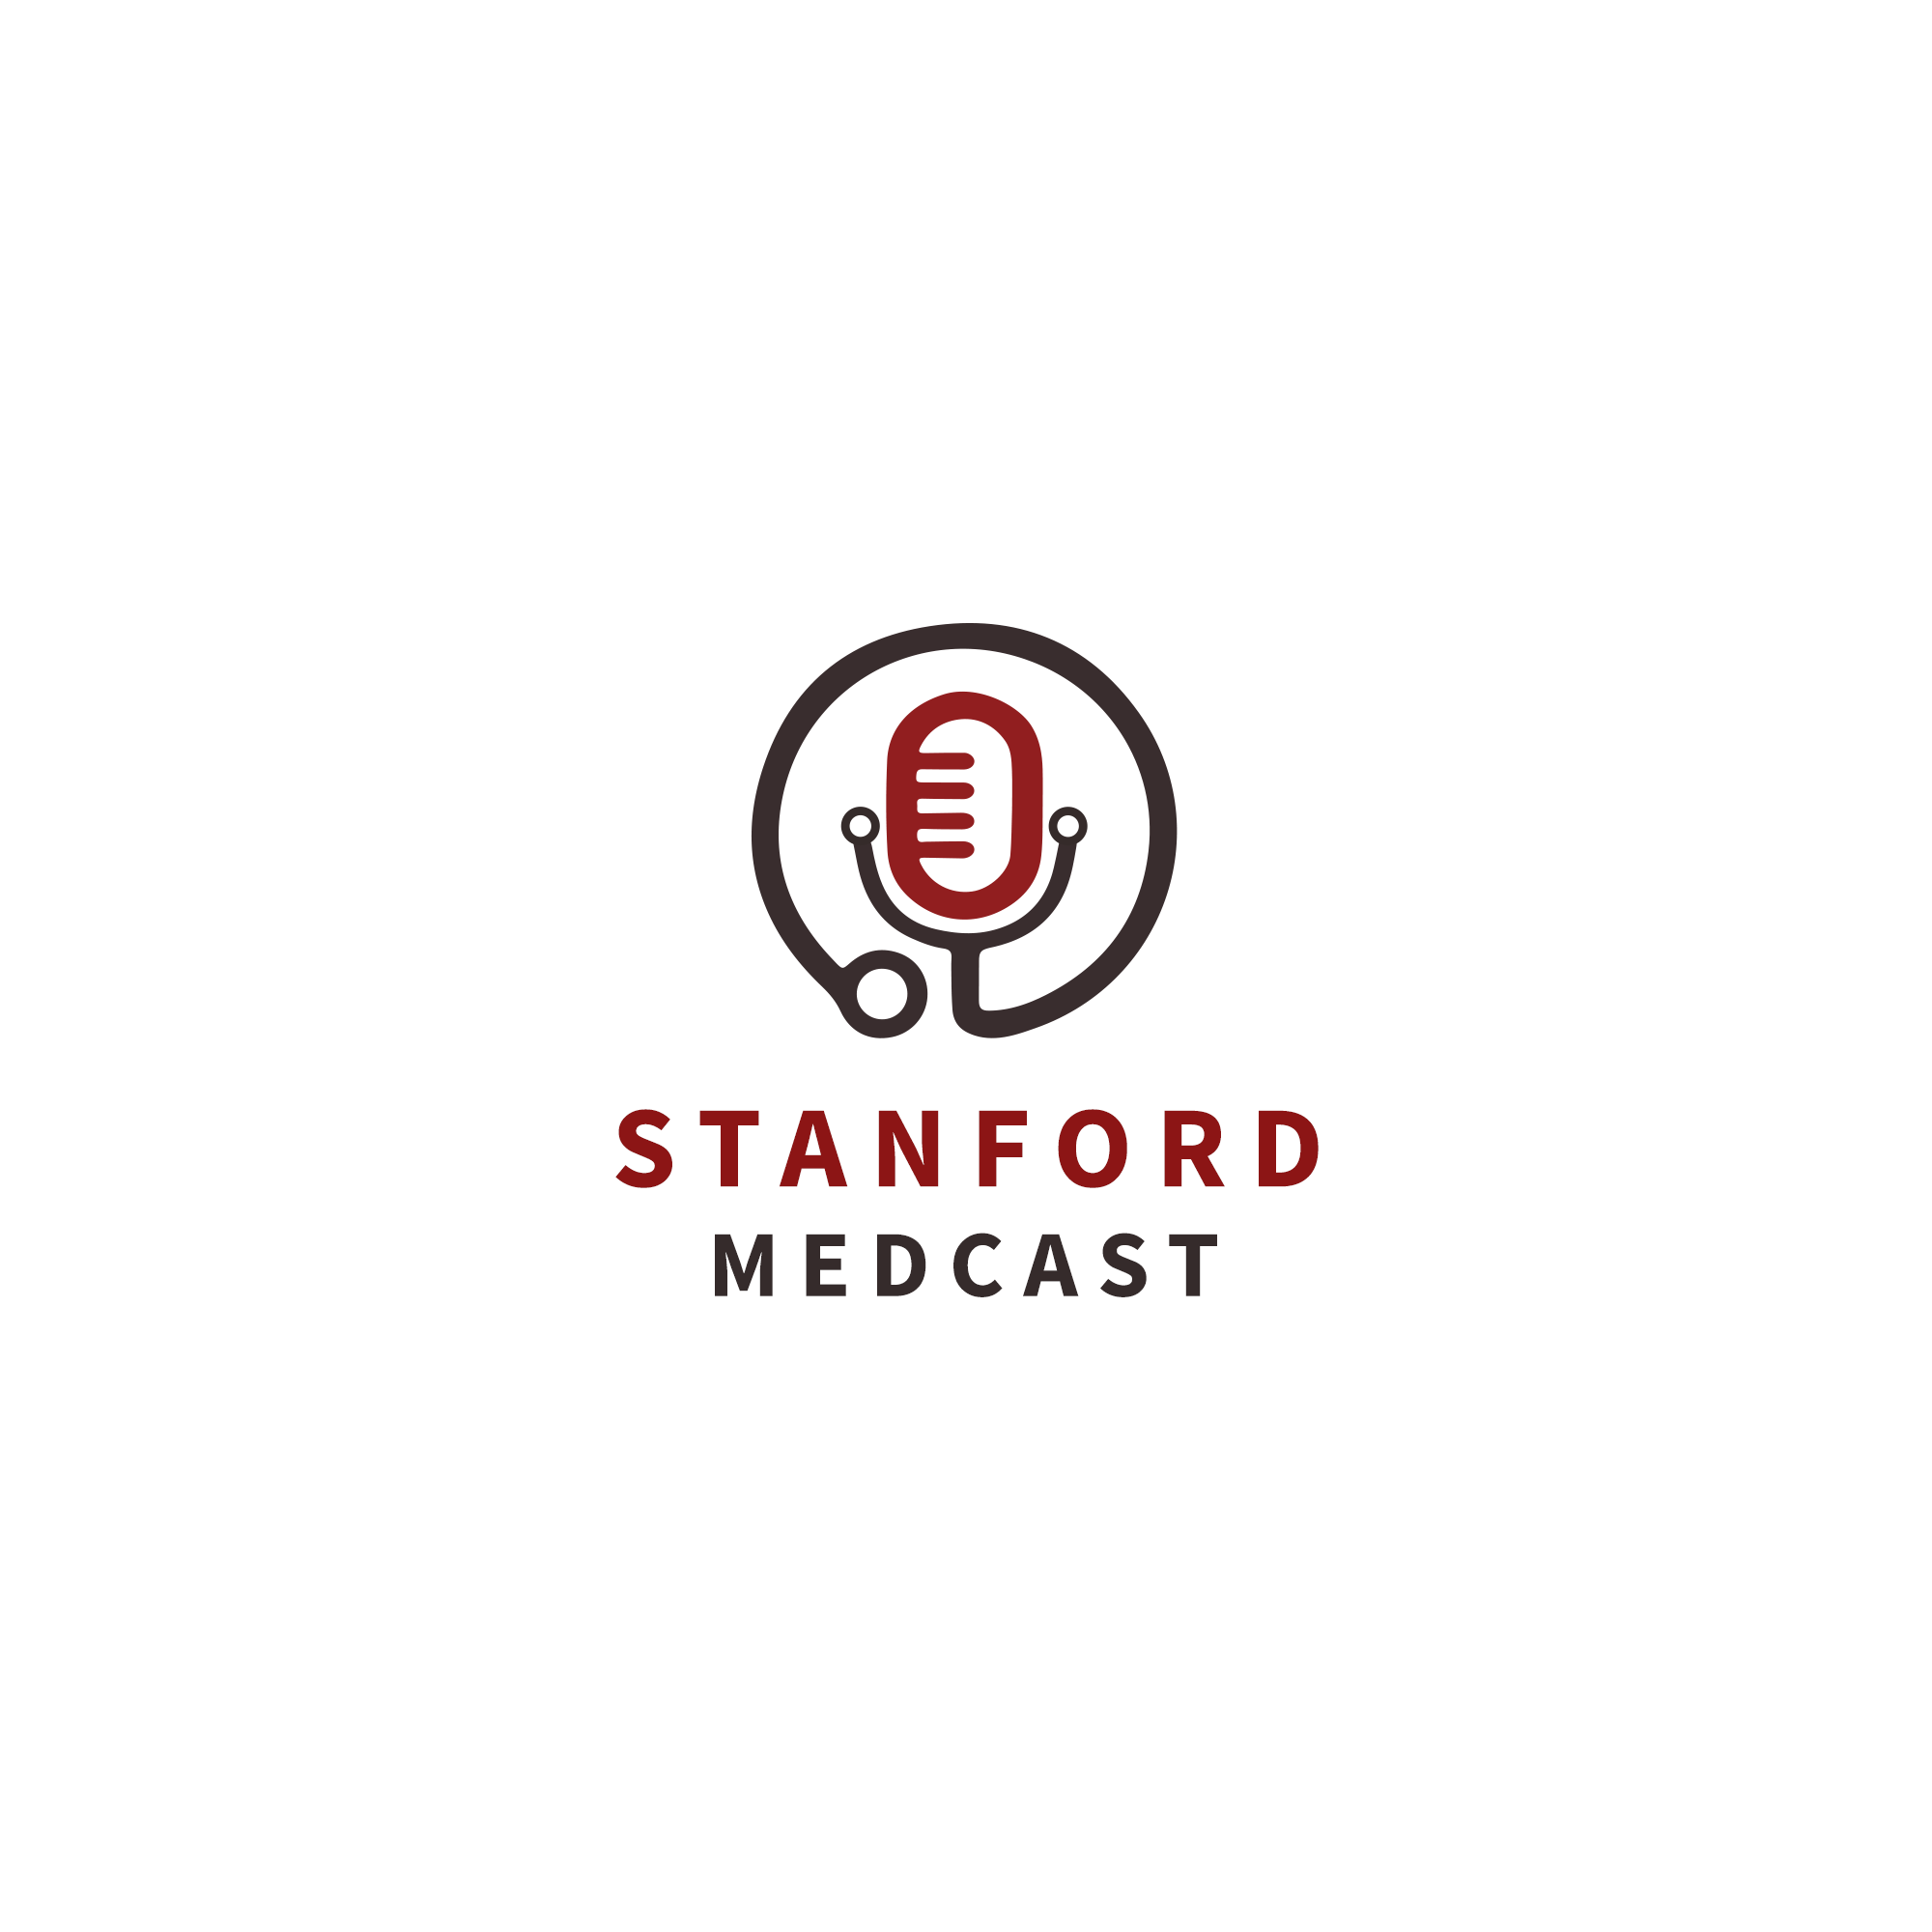 Stanford Medcast Episode 19: Hidden and Here Miniseries Part 3 Banner